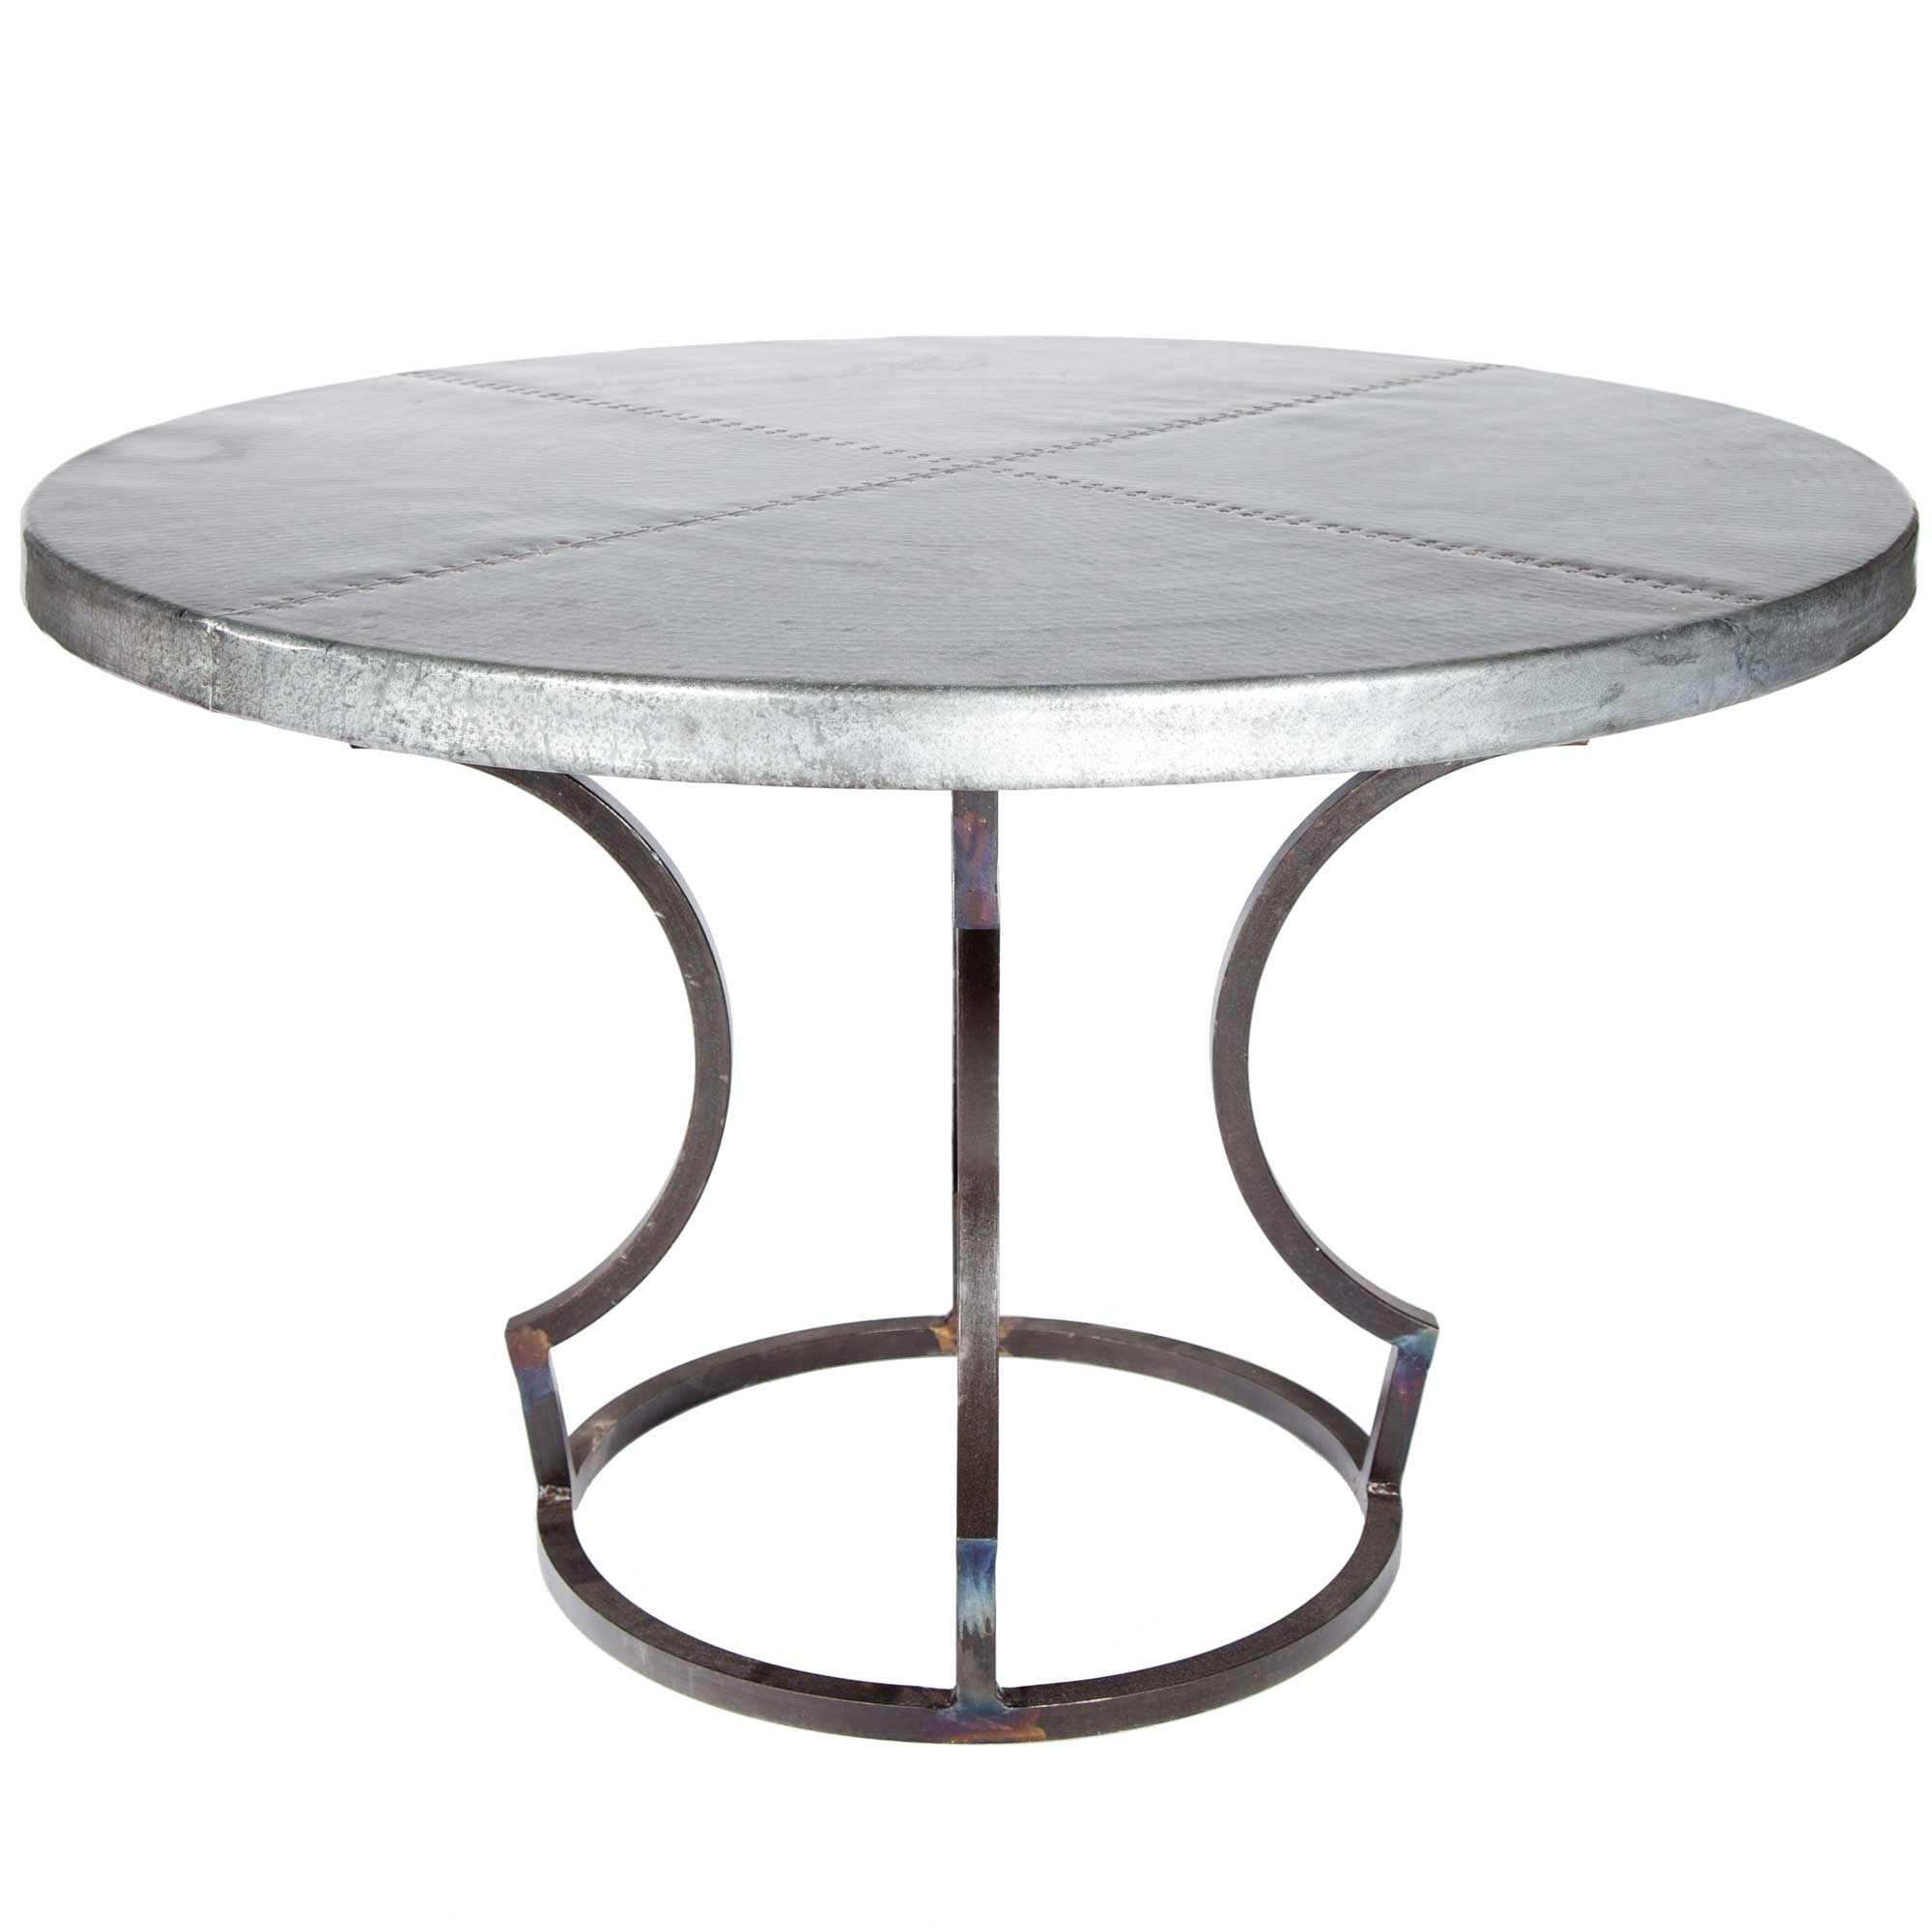 Pictured Here Is The Charles Dining Table With Wrought